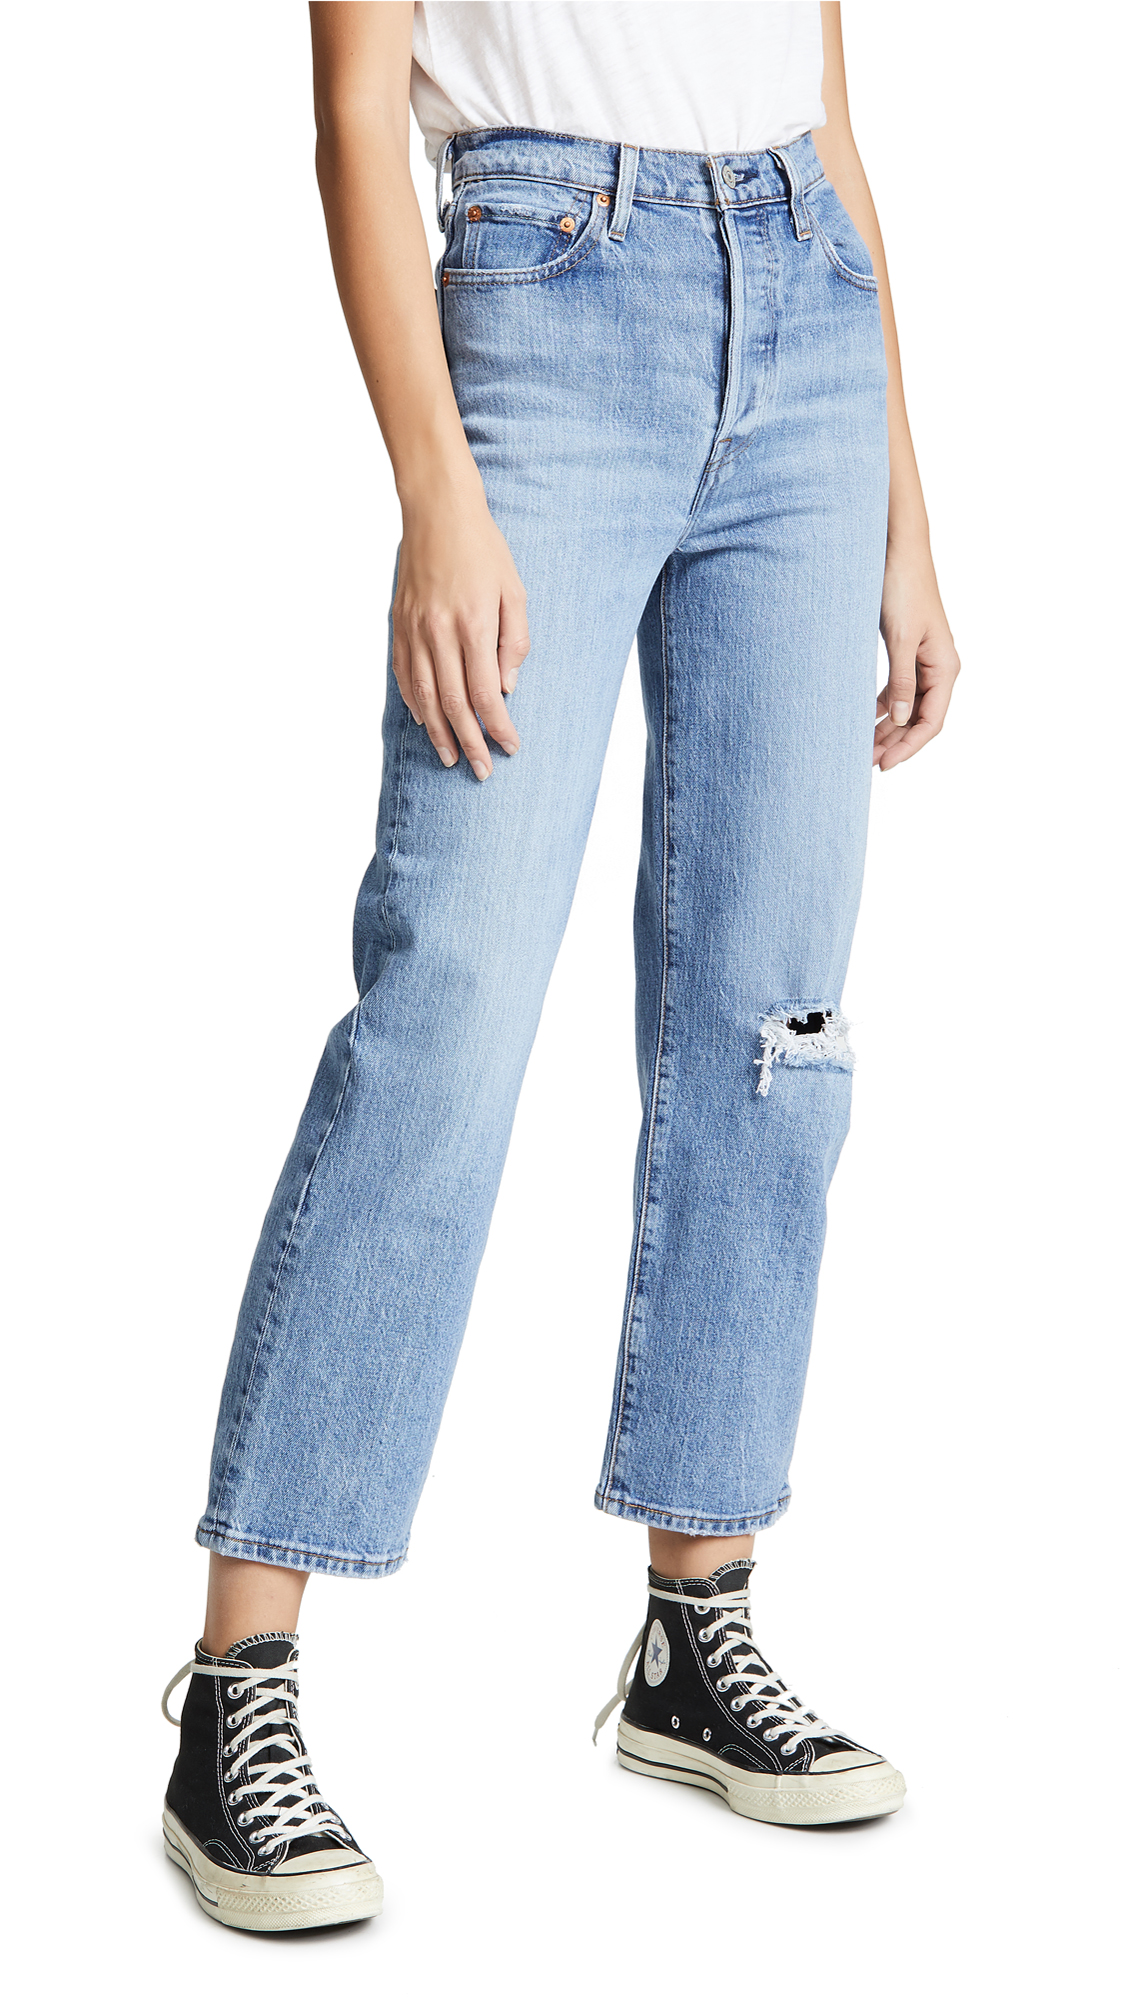 Levis Ribcage Super High Rise Jeans - Haters Gonna Hate